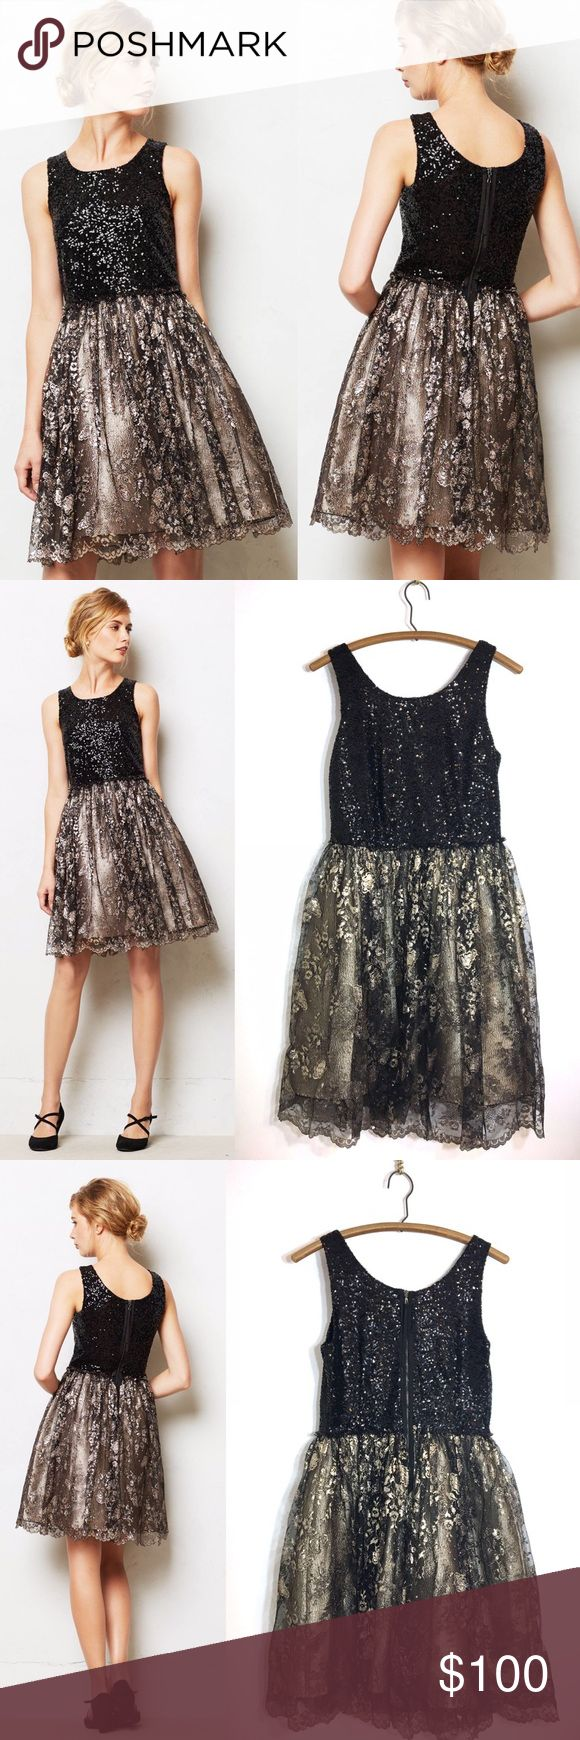 "Anthropologie Leifsdottir Eclat Dress Black & Gold Every closet needs a showstopping, head-turning, sparkly-as-can-be party dress at the ready. On our guest list: leifsdottir's mega-watt fit-and-flare. Back zip. Nylon, metallic fibers. BEAUTIFUL Leifsdottir Anthropologie women's sequin and metallic gold special occasion dress in a size 6, good used condition underarm to underarm:  16.5"" back of neck to bottom hem:  33"" shoulder strap to bottom hem:  38"" Chest: 34"" Waist: 28"" Anthropologie…"